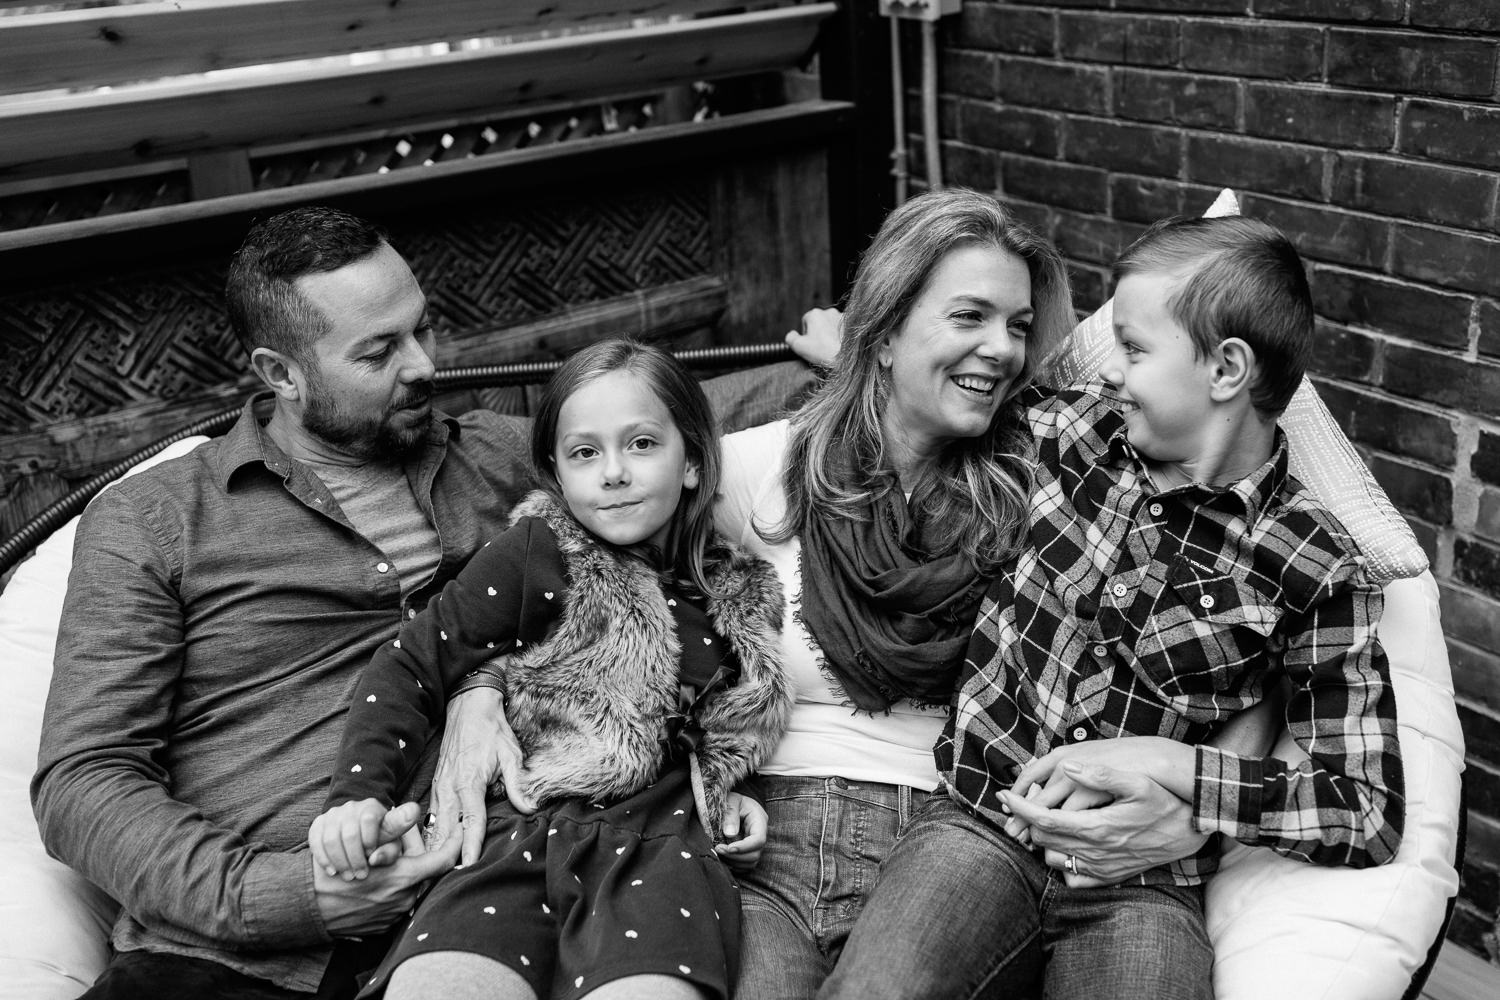 family of 4 sitting and snuggling on outdoor couch, 7 year old girl sitting in dad's lap holding his hand, 9 year old boy sitting in mom's lap smiling at her - GTA Lifestyle Photography